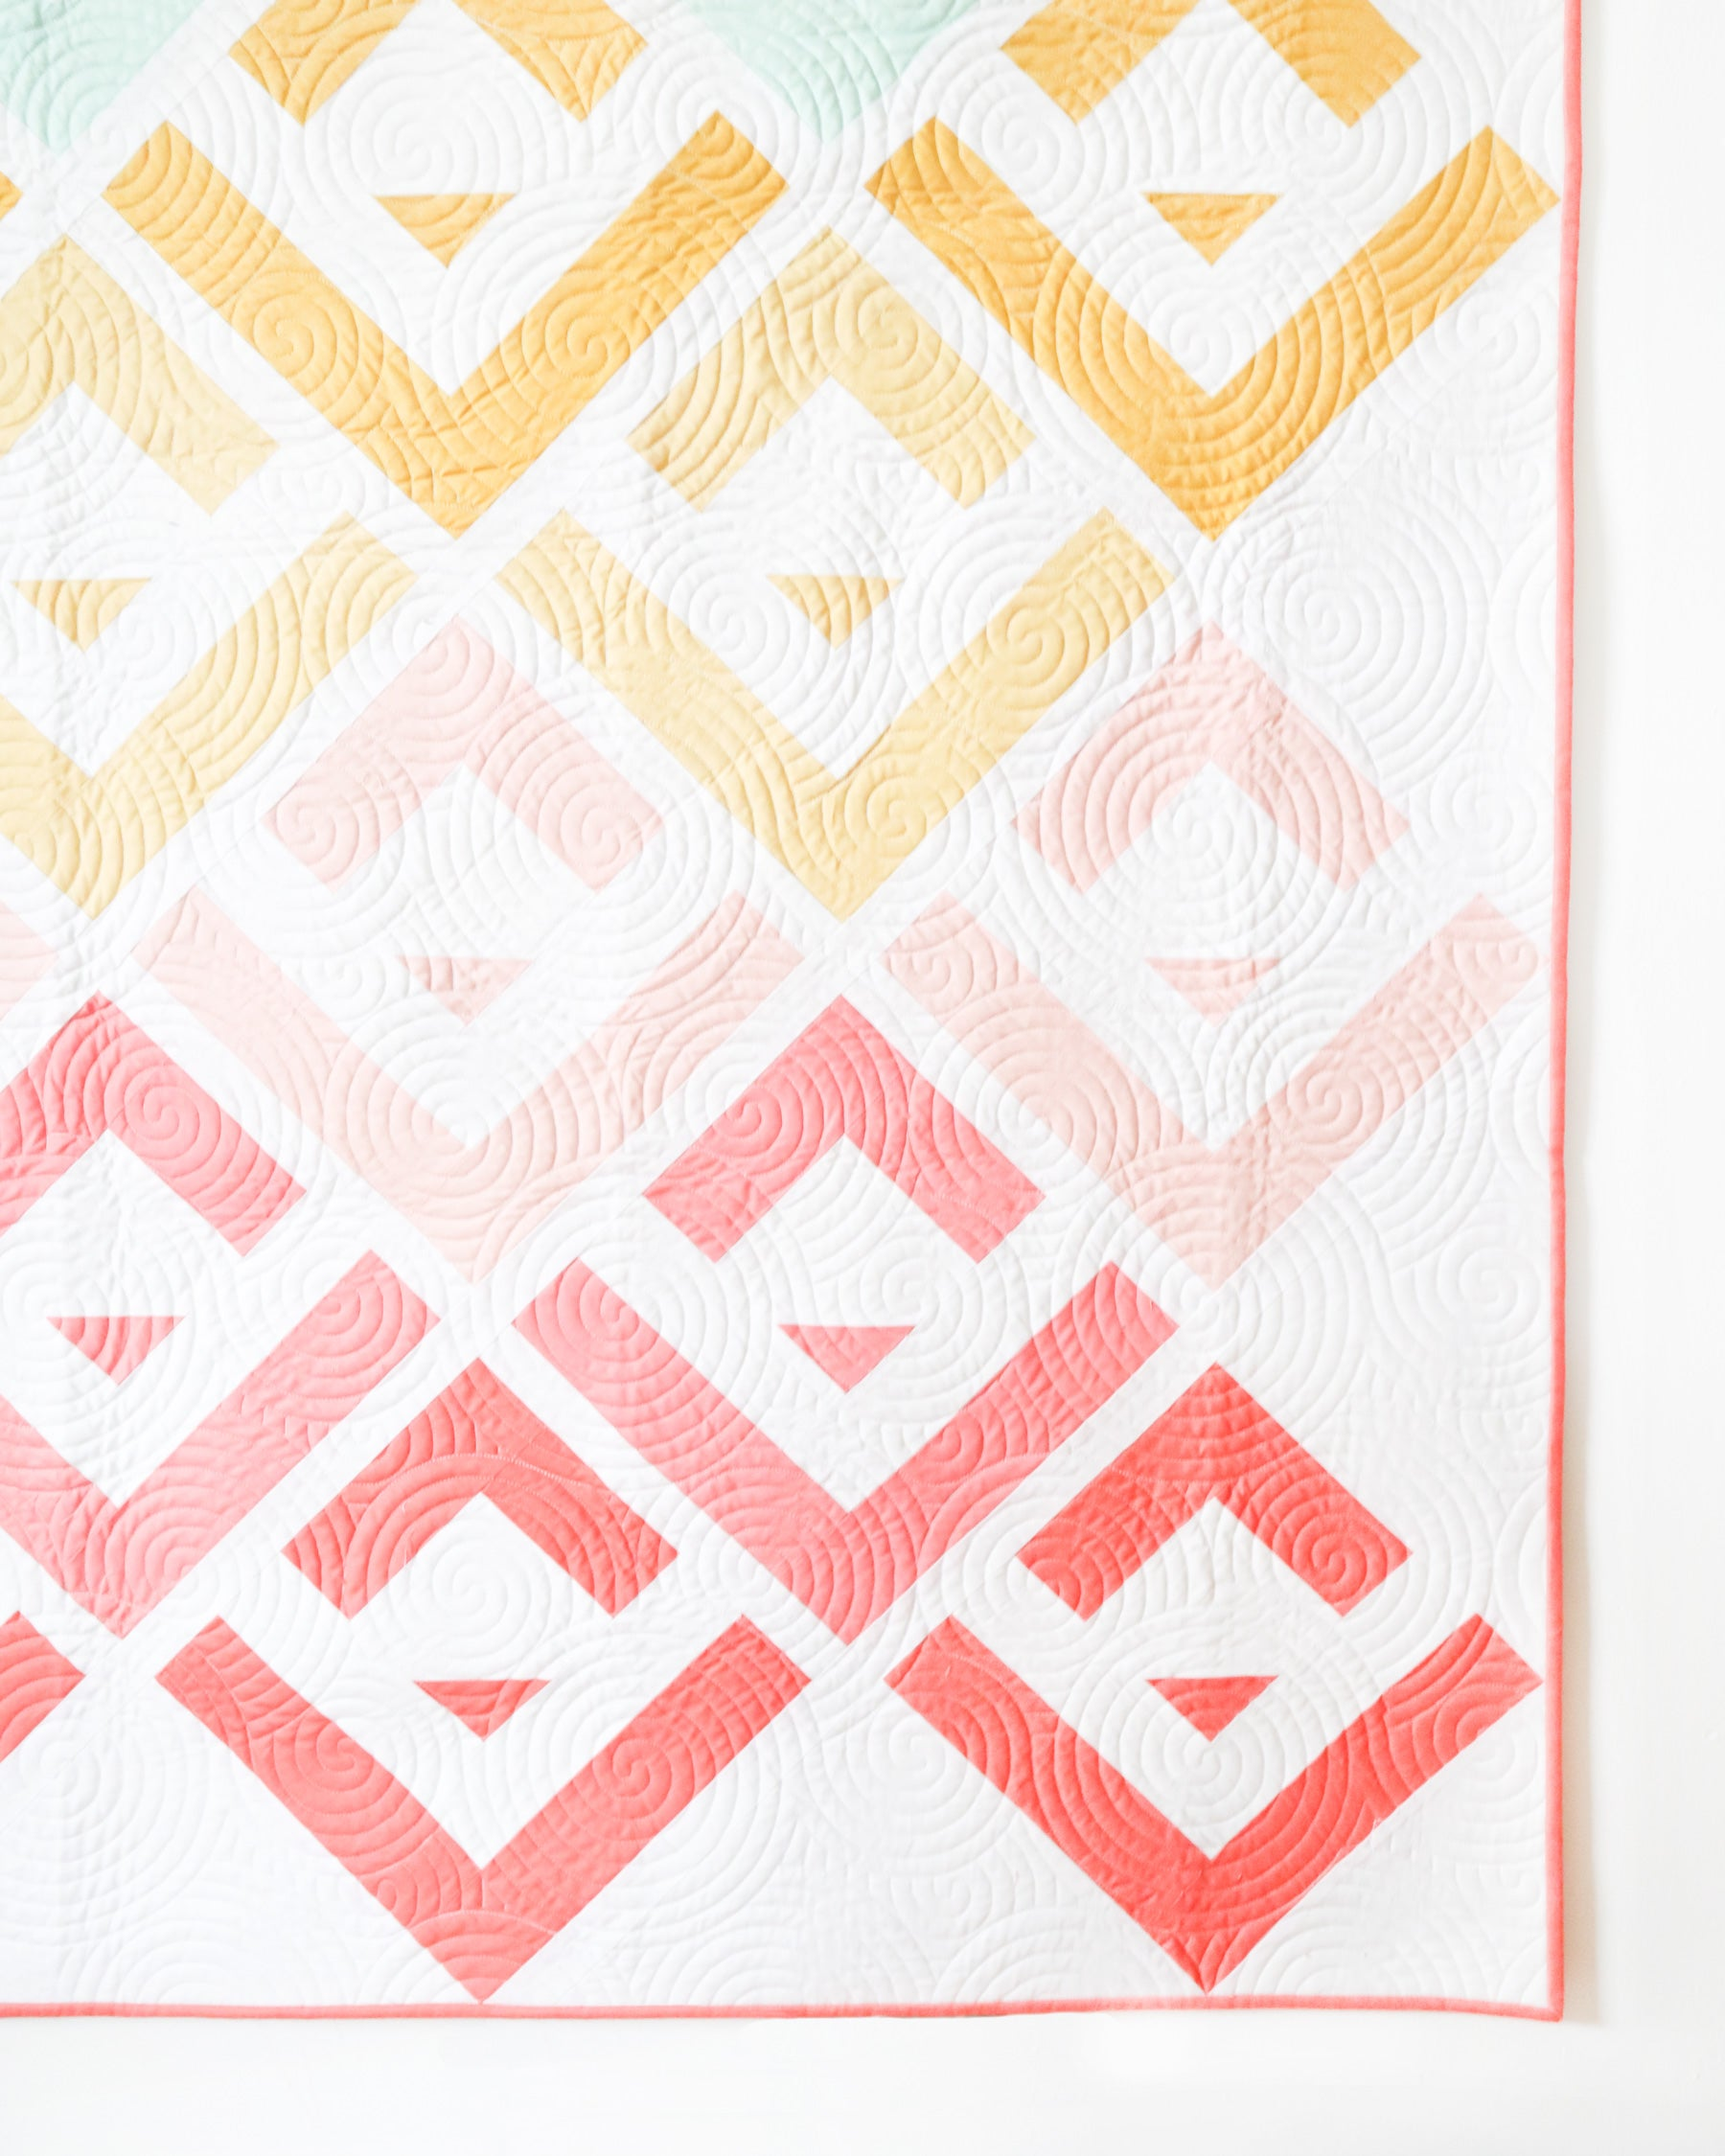 Cabin Valley quilt by Cotton and Joy - a modern log cabin quilt